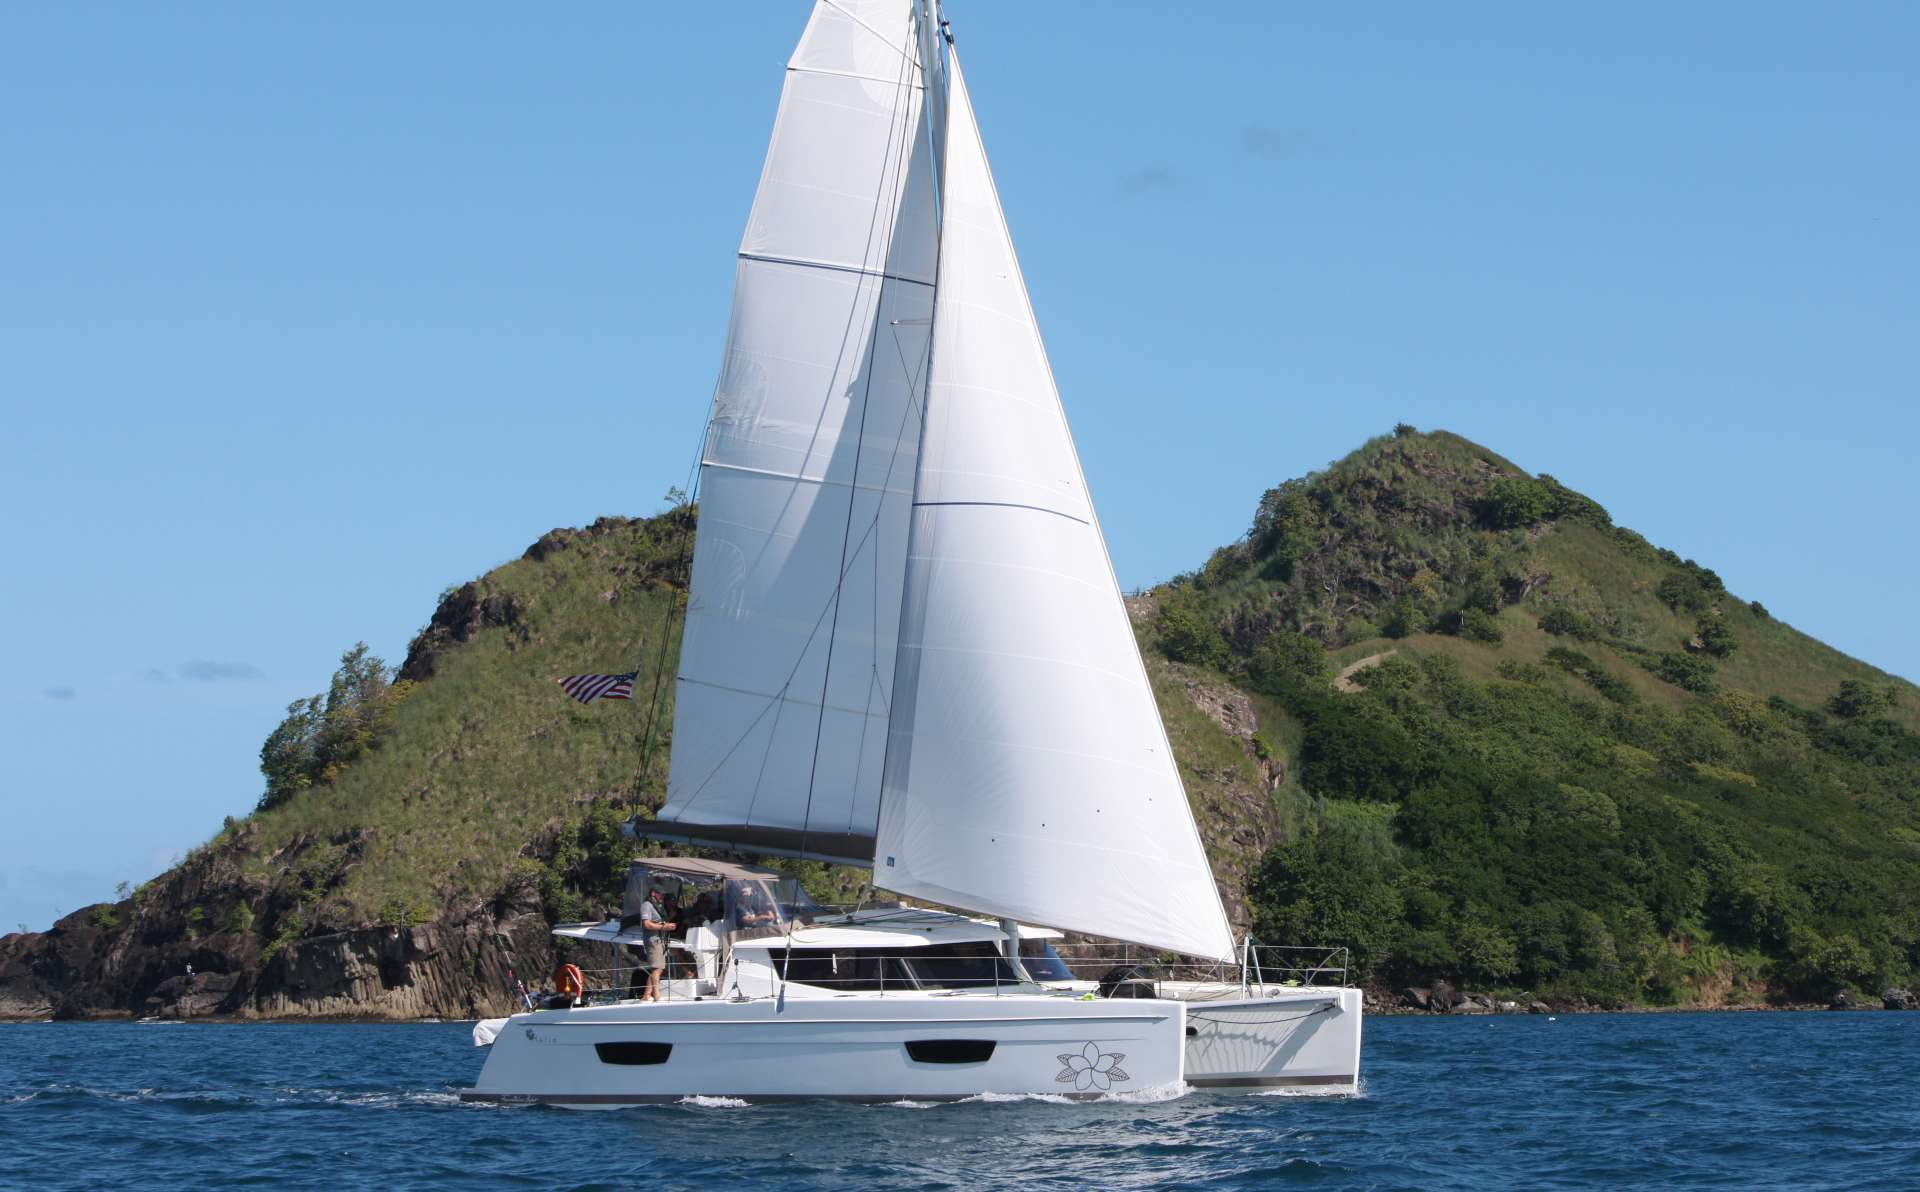 Charter with ALLENDE on compassyachtcharters.com